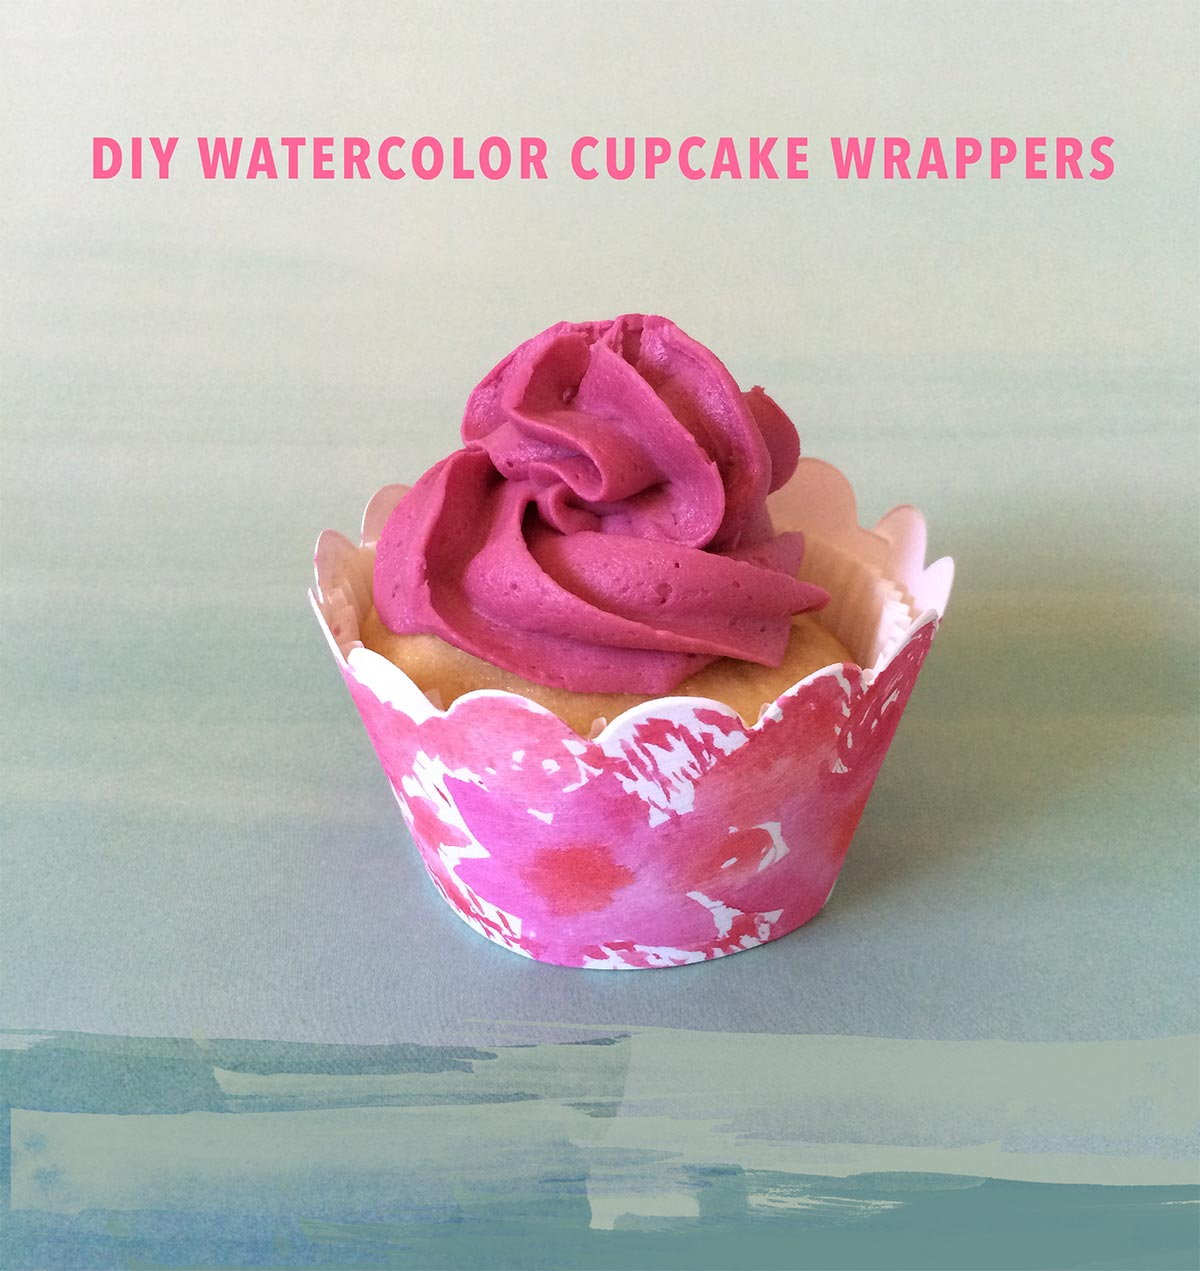 DIY Watercolor Cupcake LIners